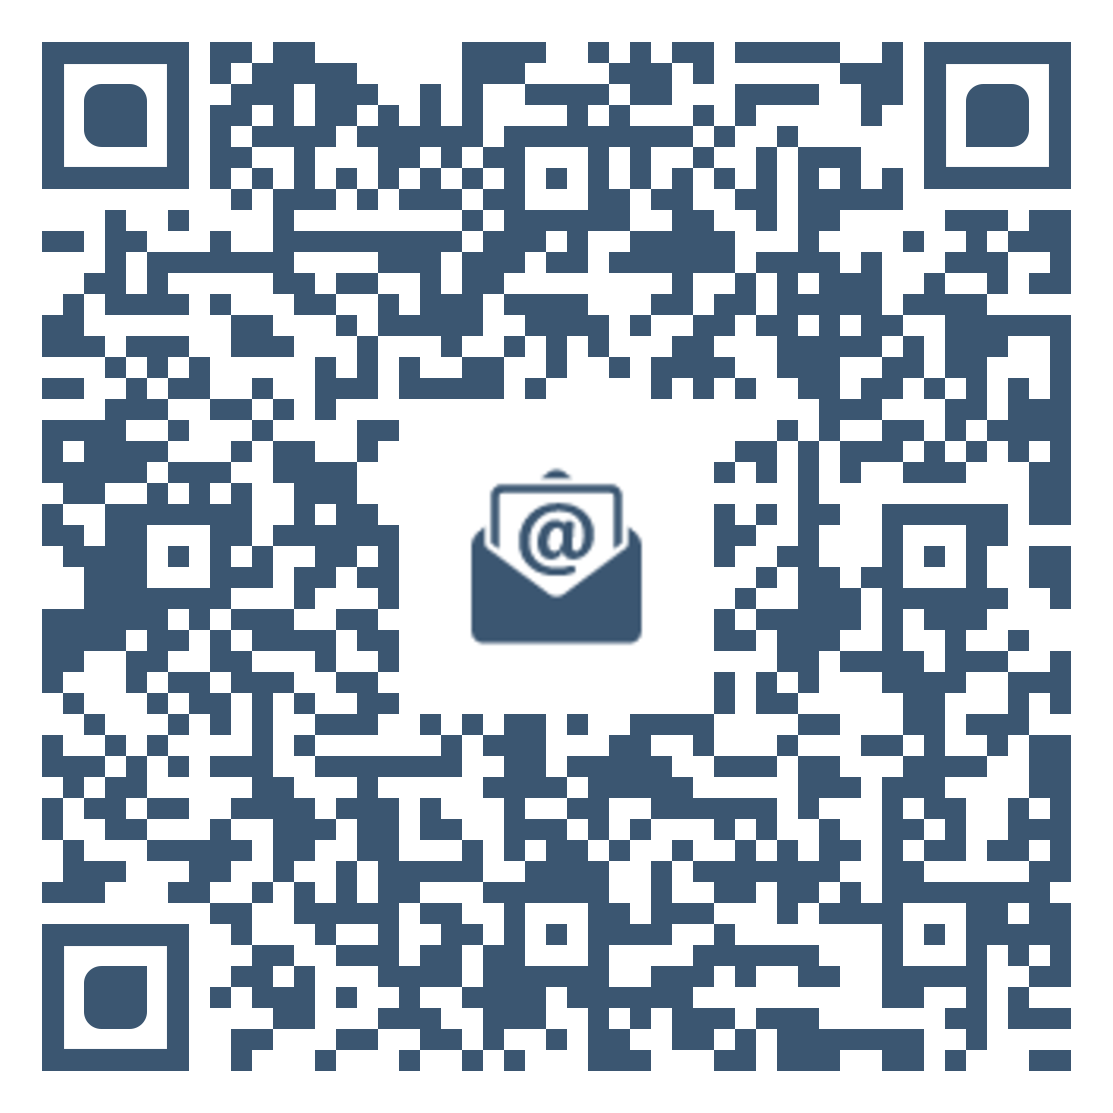 QR code to link to the Ask a Librarian email service